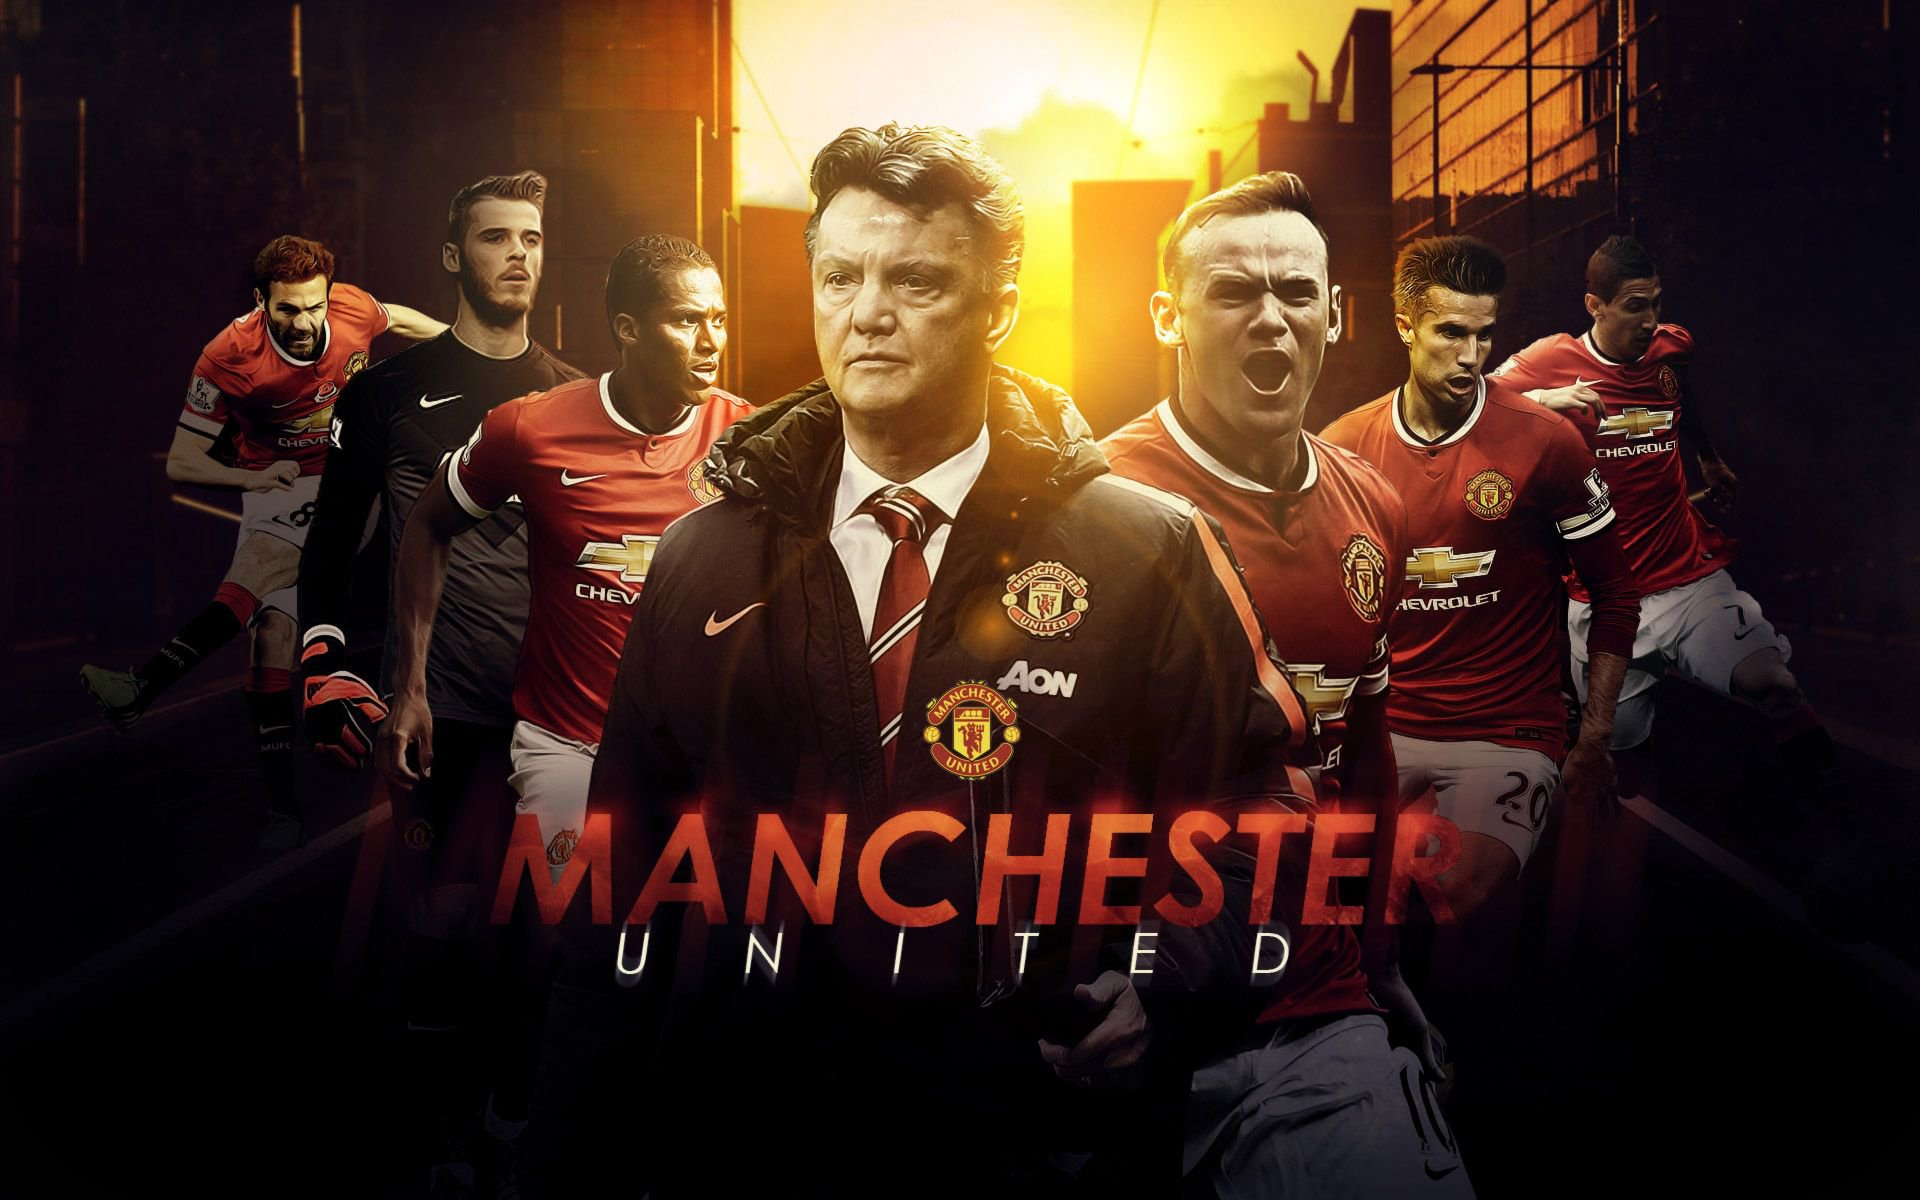 Free Download Manchester United Wallpapers Hd 1920x1200 For Your Desktop Mobile Tablet Explore 72 Wallpaper Hd Pc 2015 Pc Wallpaper Download Full Hd Wallpaper 2015 Barcelona Hd Wallpaper 2015